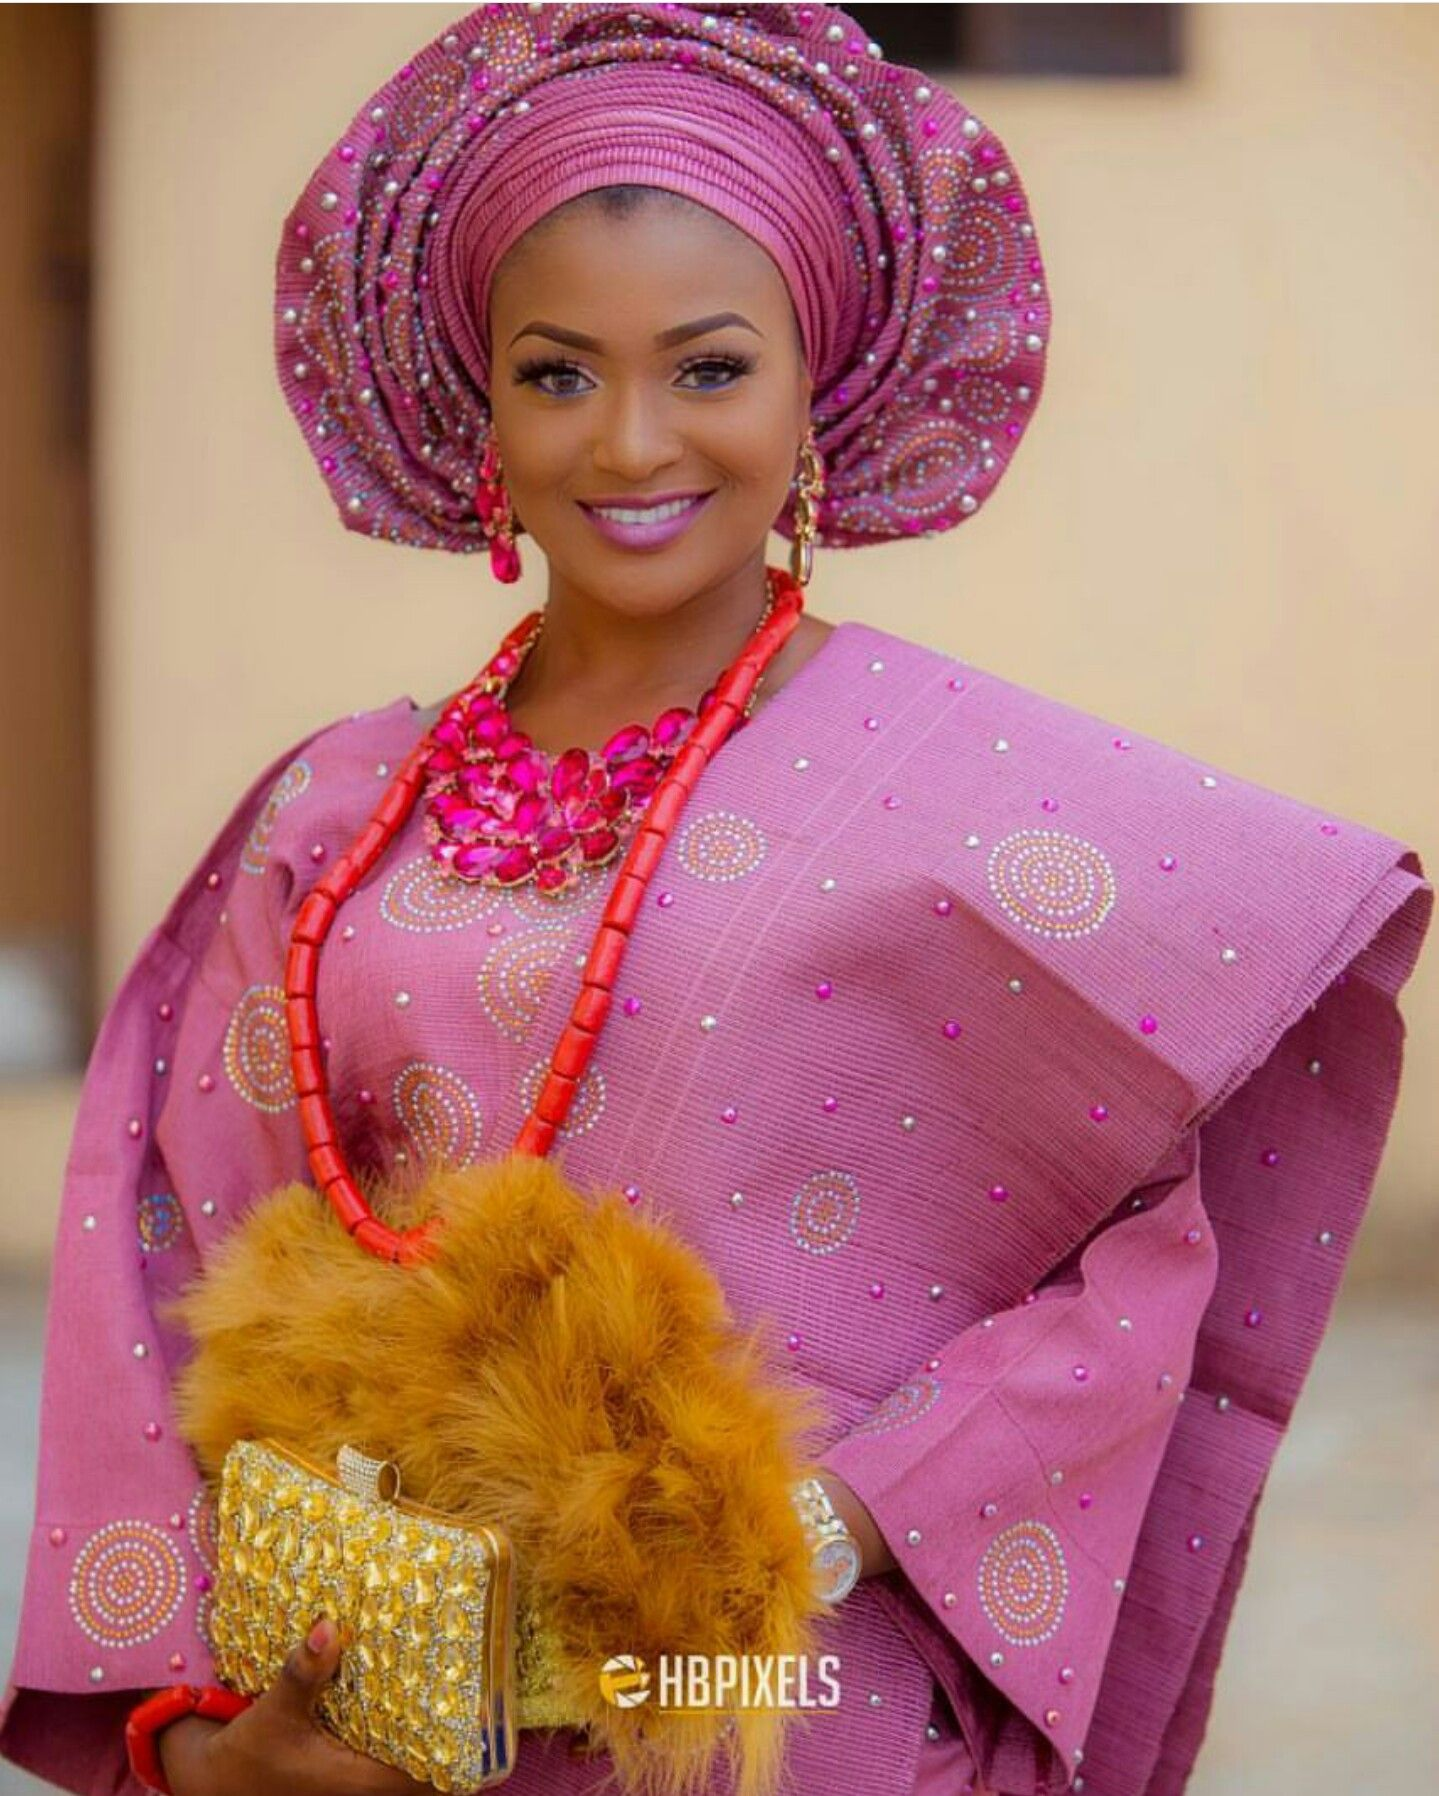 Pin de Ankara Blvd en Wedding Flow | Pinterest | Africanos